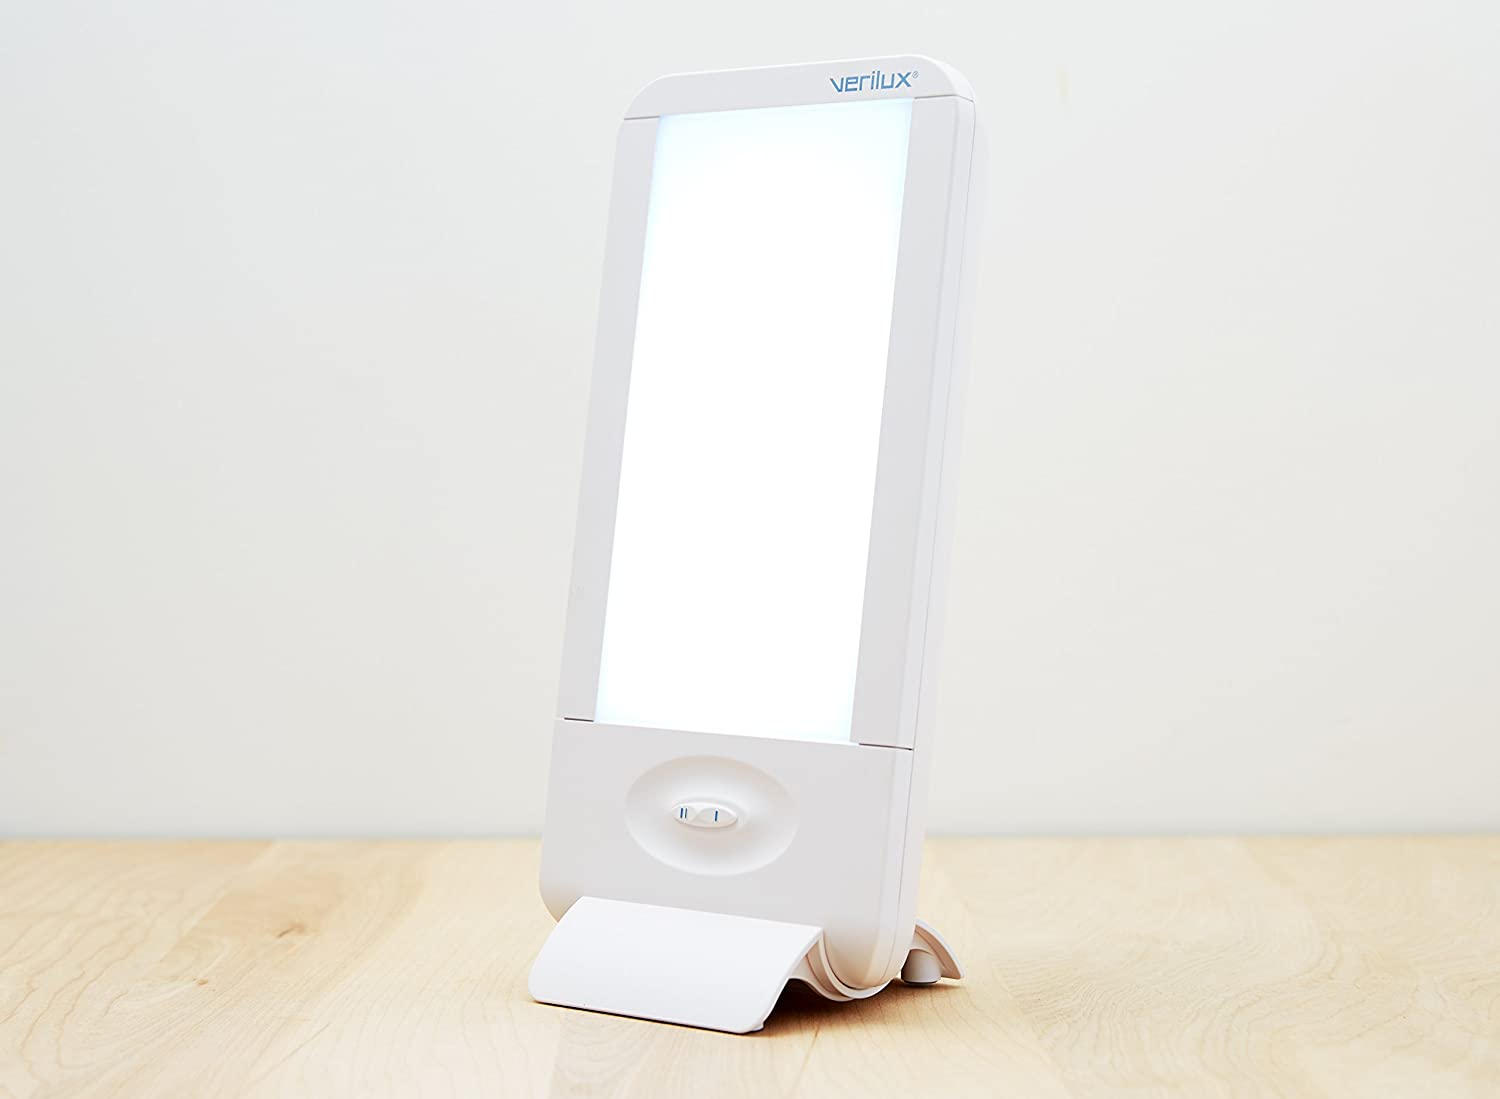 Amazon.com: Verilux HappyLight Liberty 10,000 LUX Light Therapy Energy Lamp:  Health U0026 Personal Care